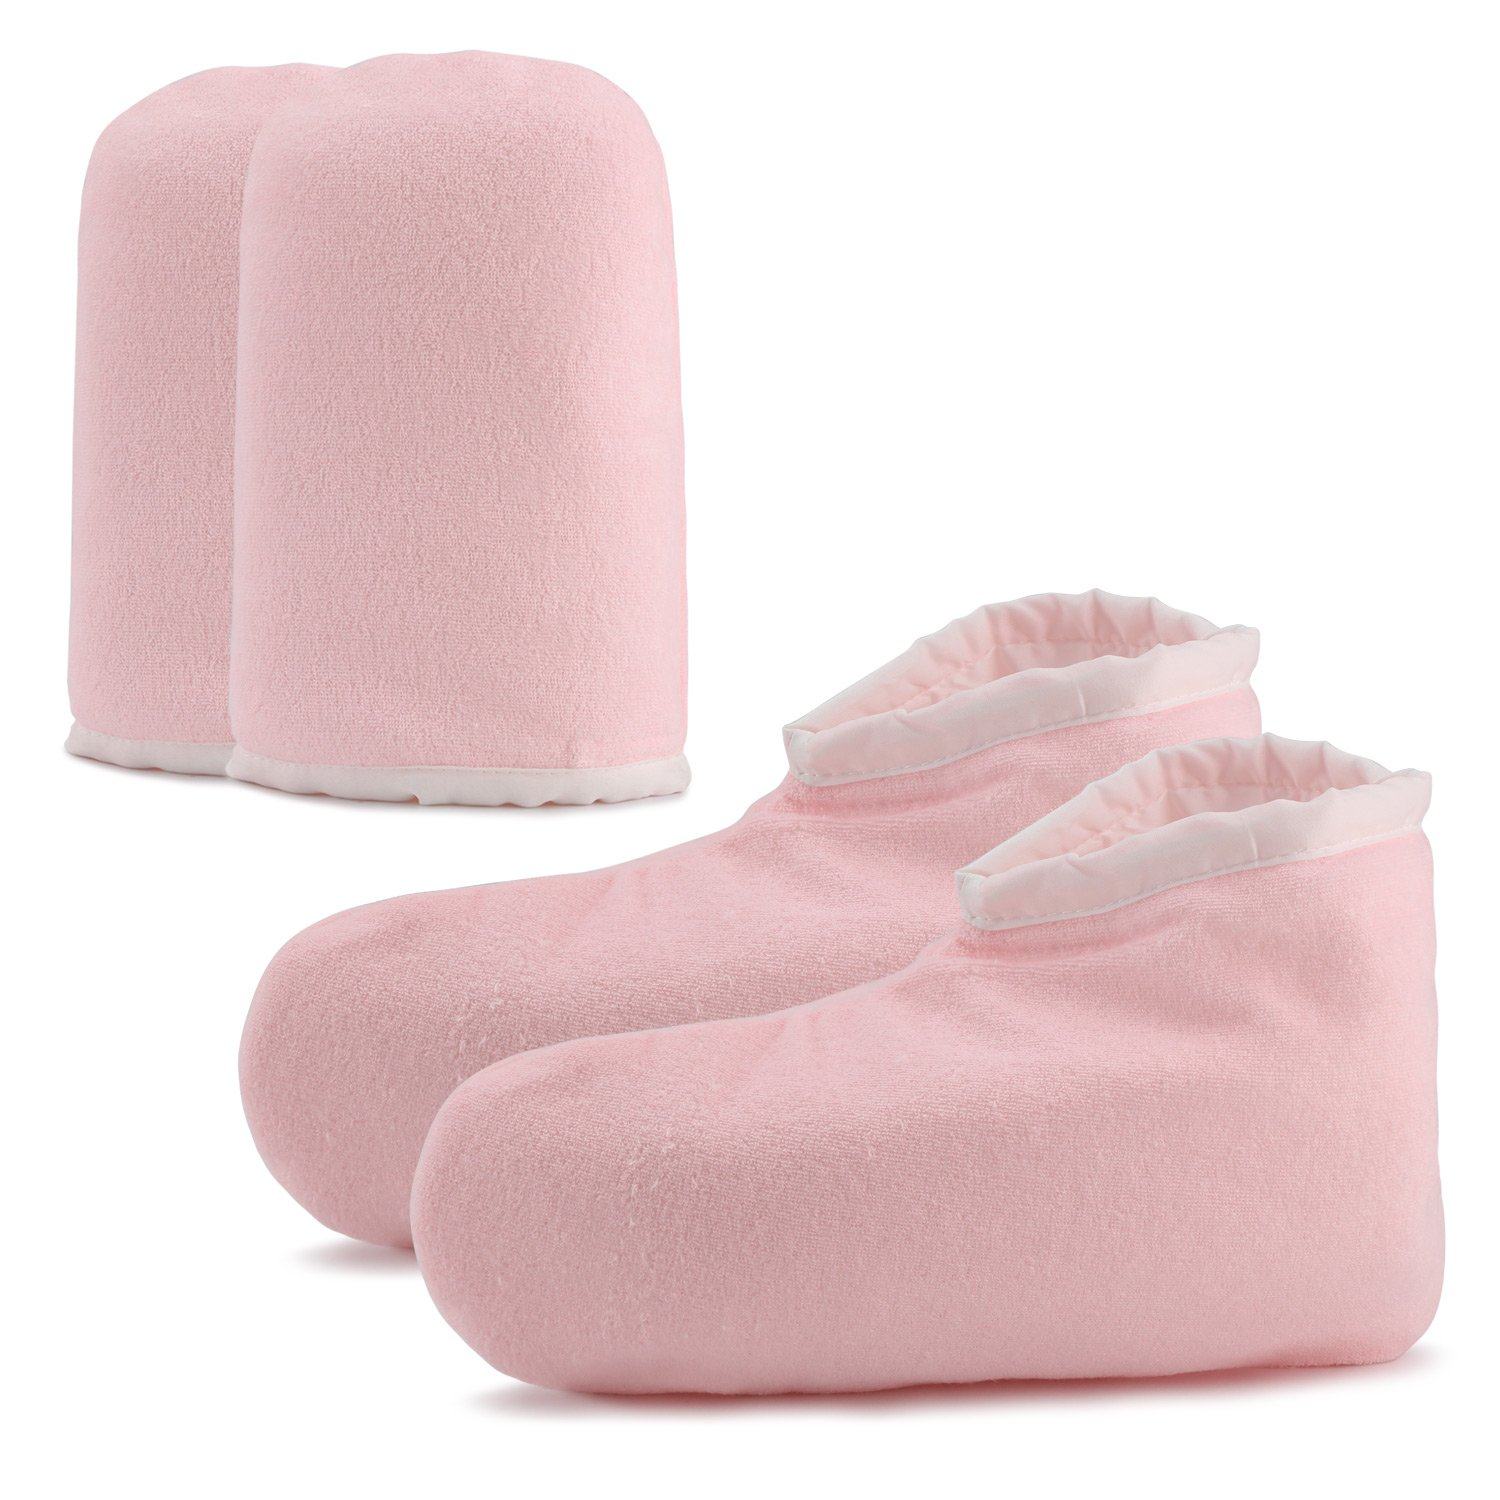 Paraffin Wax Bath Terry Cloth Gloves Booties, Wax Care Insulated Mittens, Heat Therapy Spa Treatment Tanning Mitt, Great for Paraffin Wax Machine- Pink : Beauty